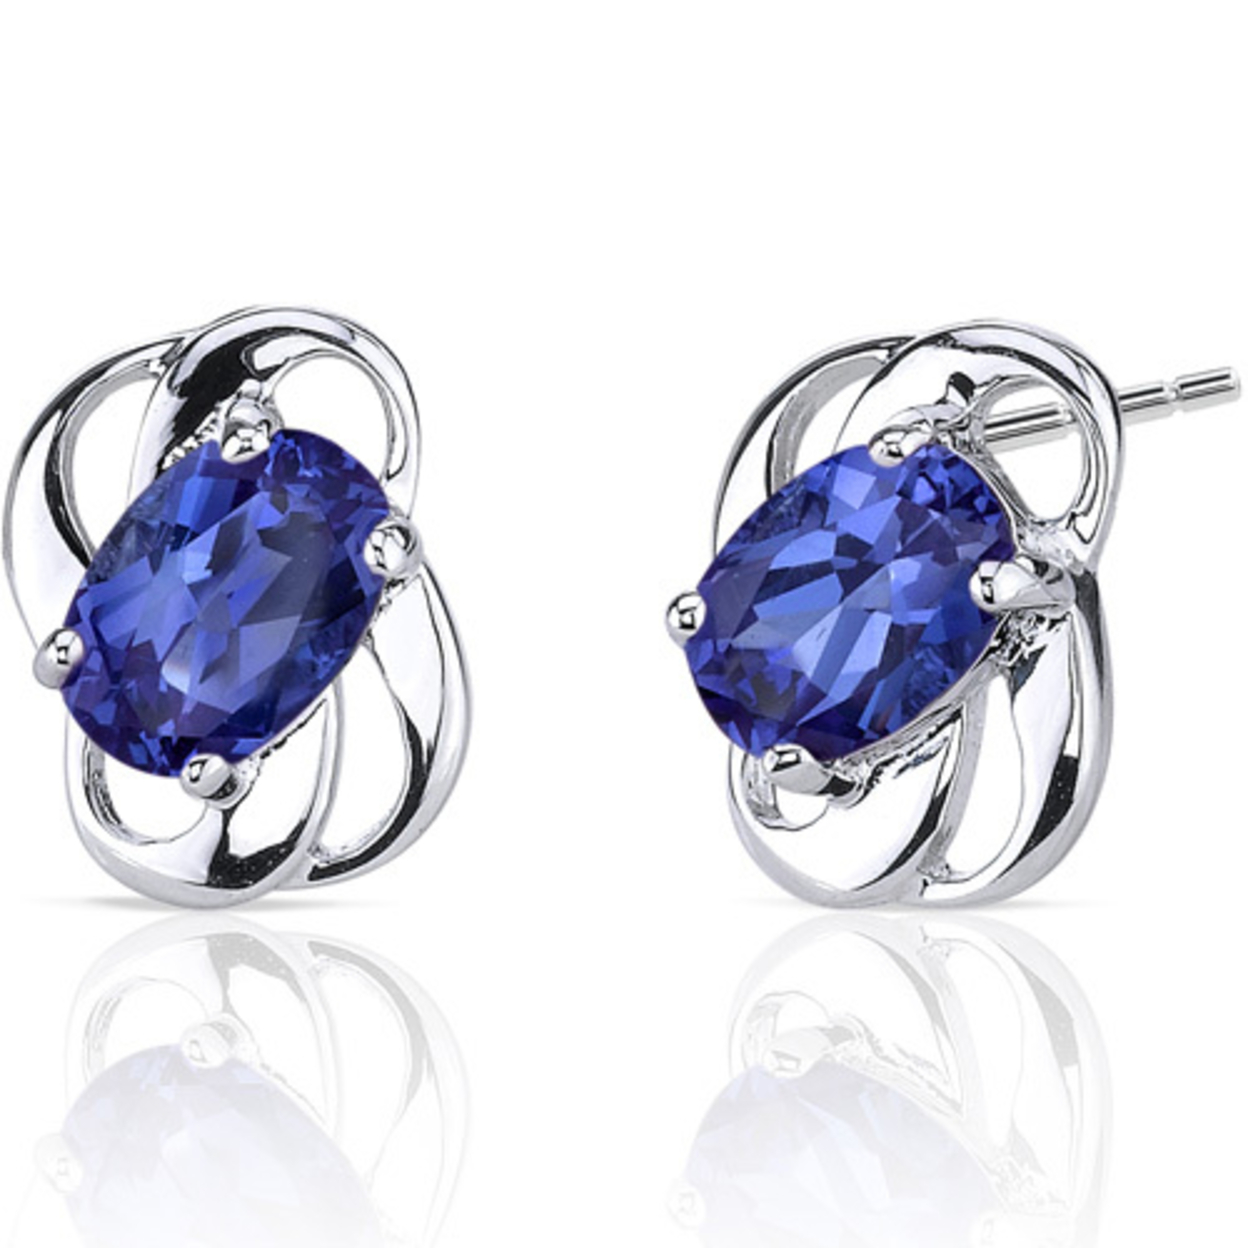 Classy 2.00 Carats Sapphire Earrings In Sterling Silver Style Se6974